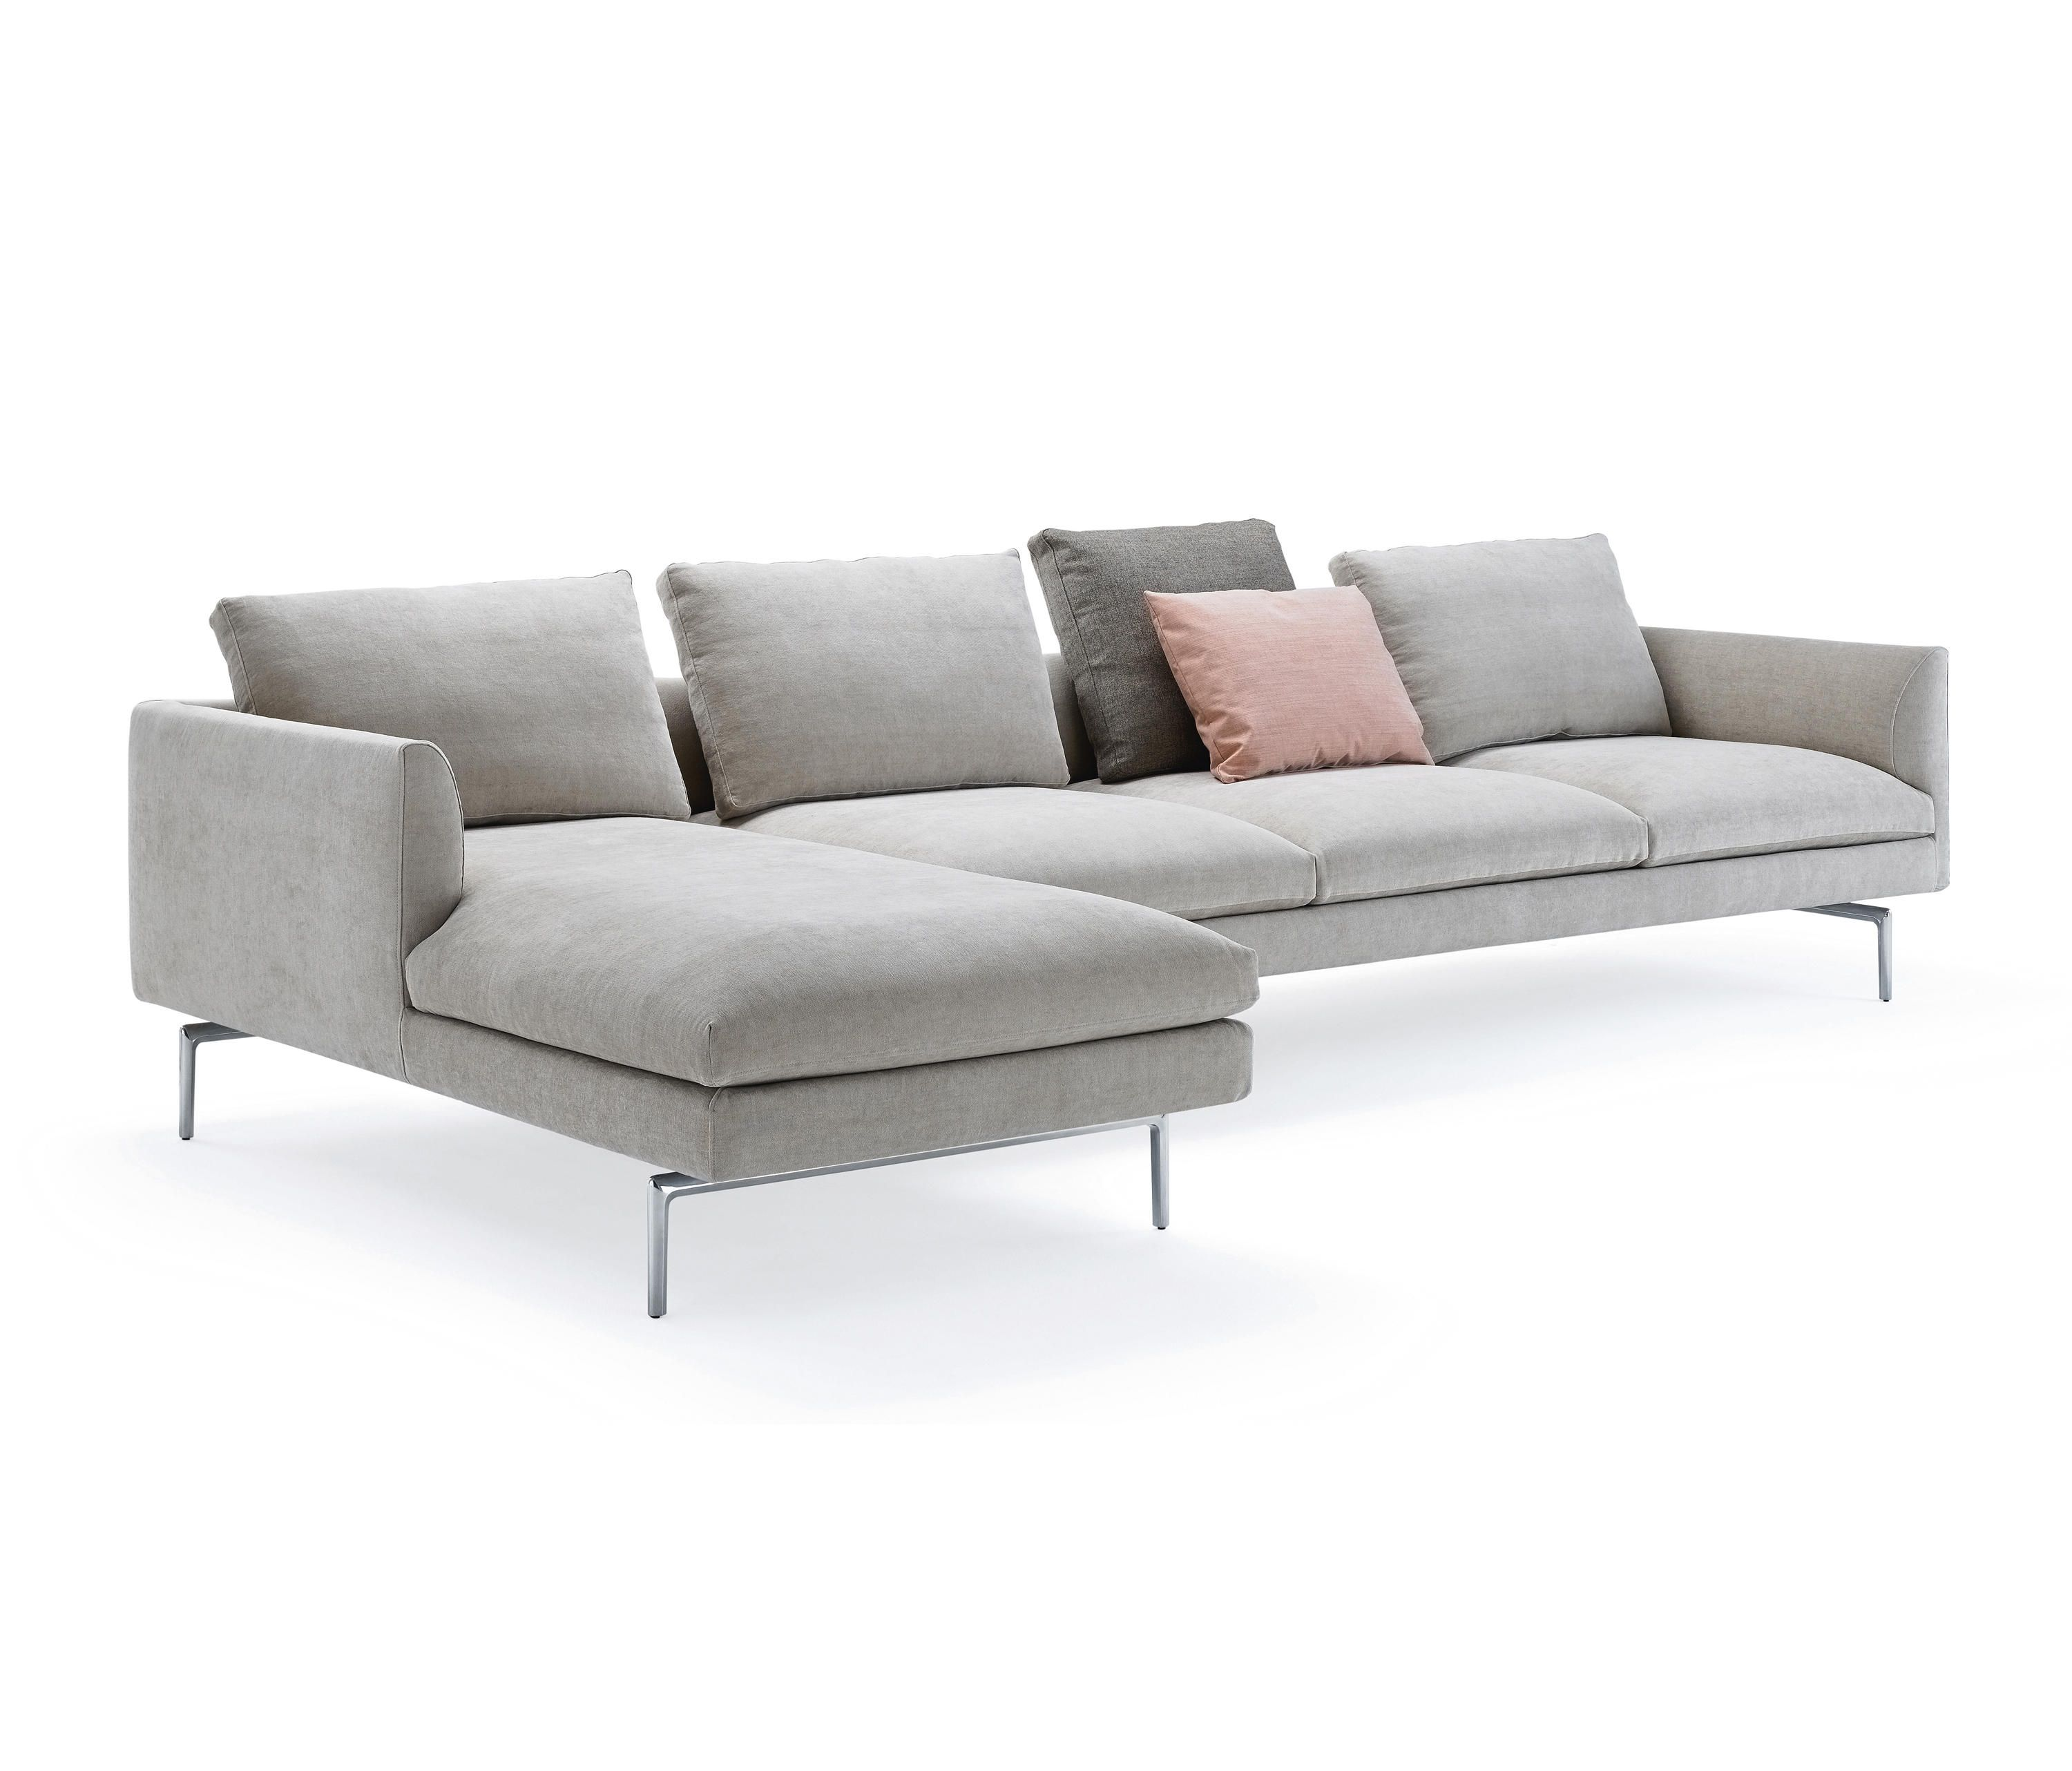 FLAMINGO   1333 - Designer Sofas from Zanotta ✓ all information ✓ high-resolution images ✓ CADs ✓ catalogues ✓ contact information ✓ find your..